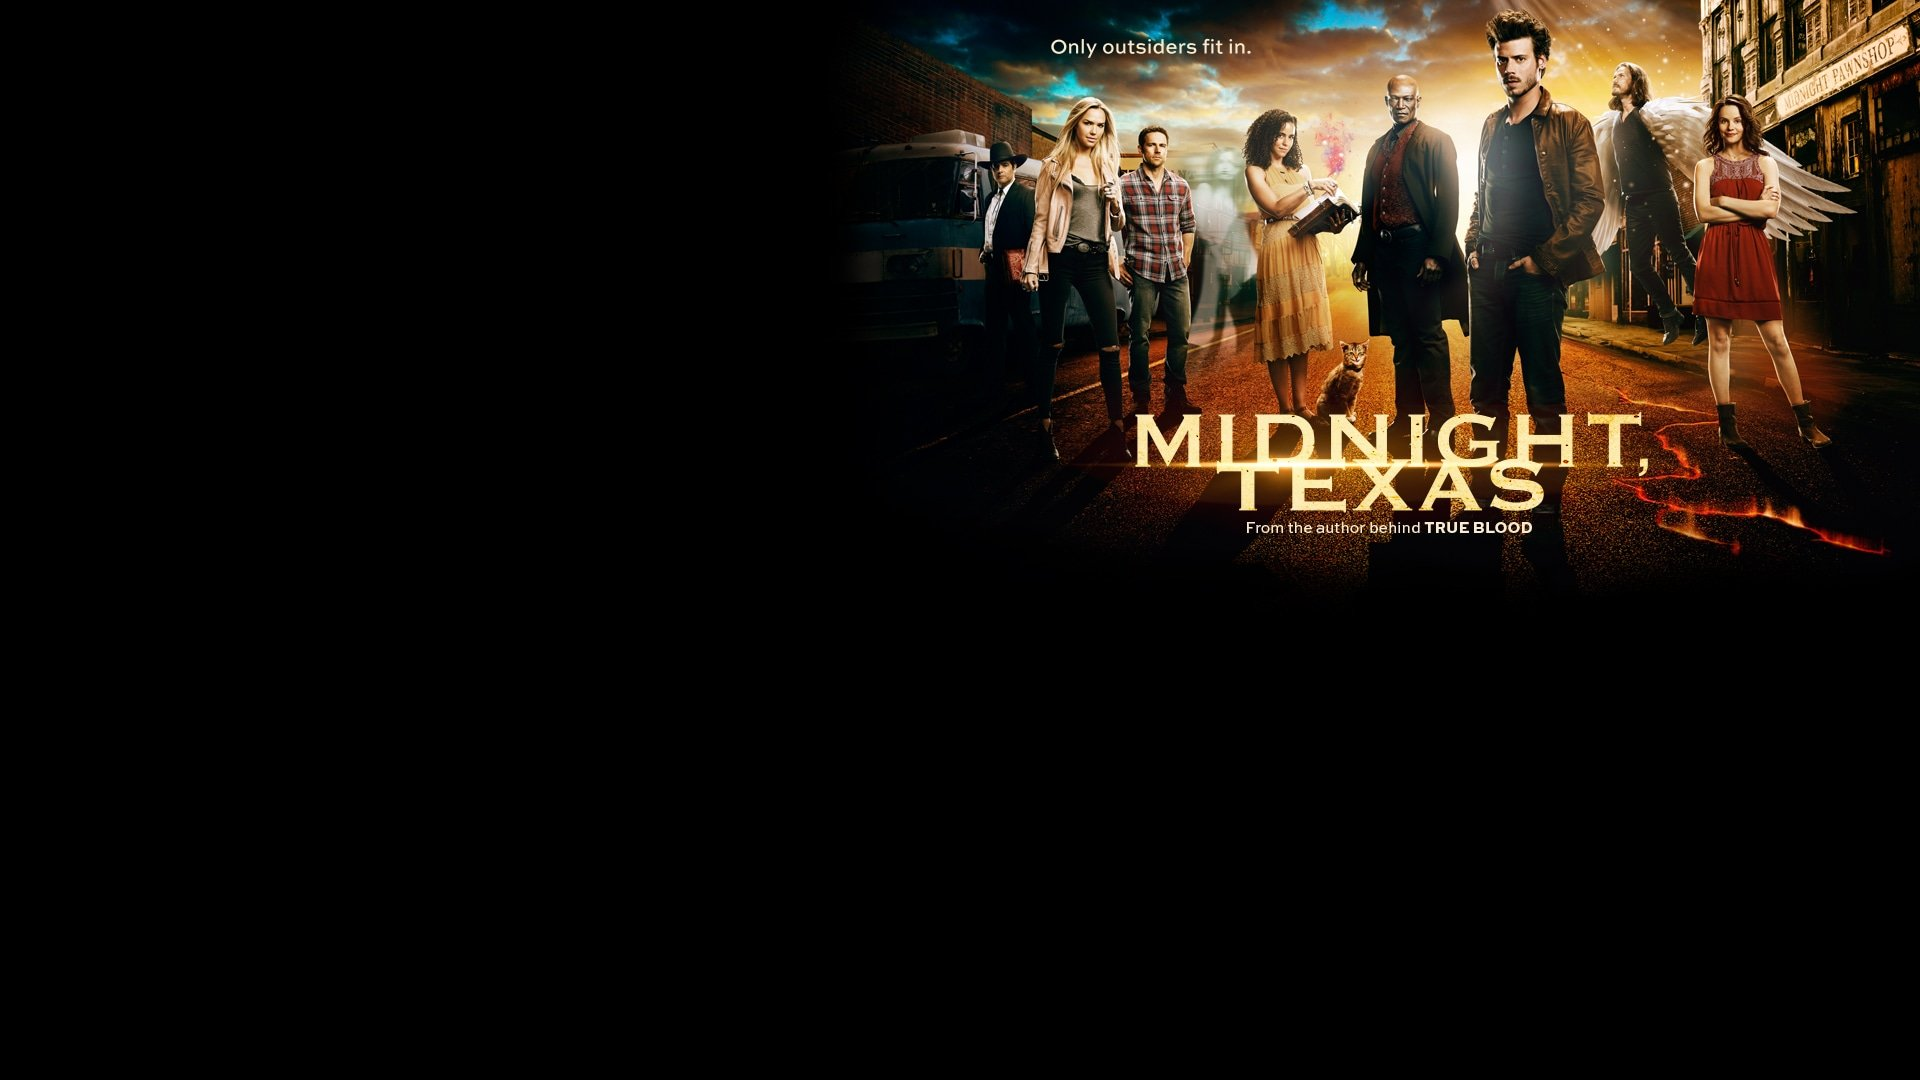 NBC Homepage - NEW SITE - Dynamic Lead Slide - Midnight Texas